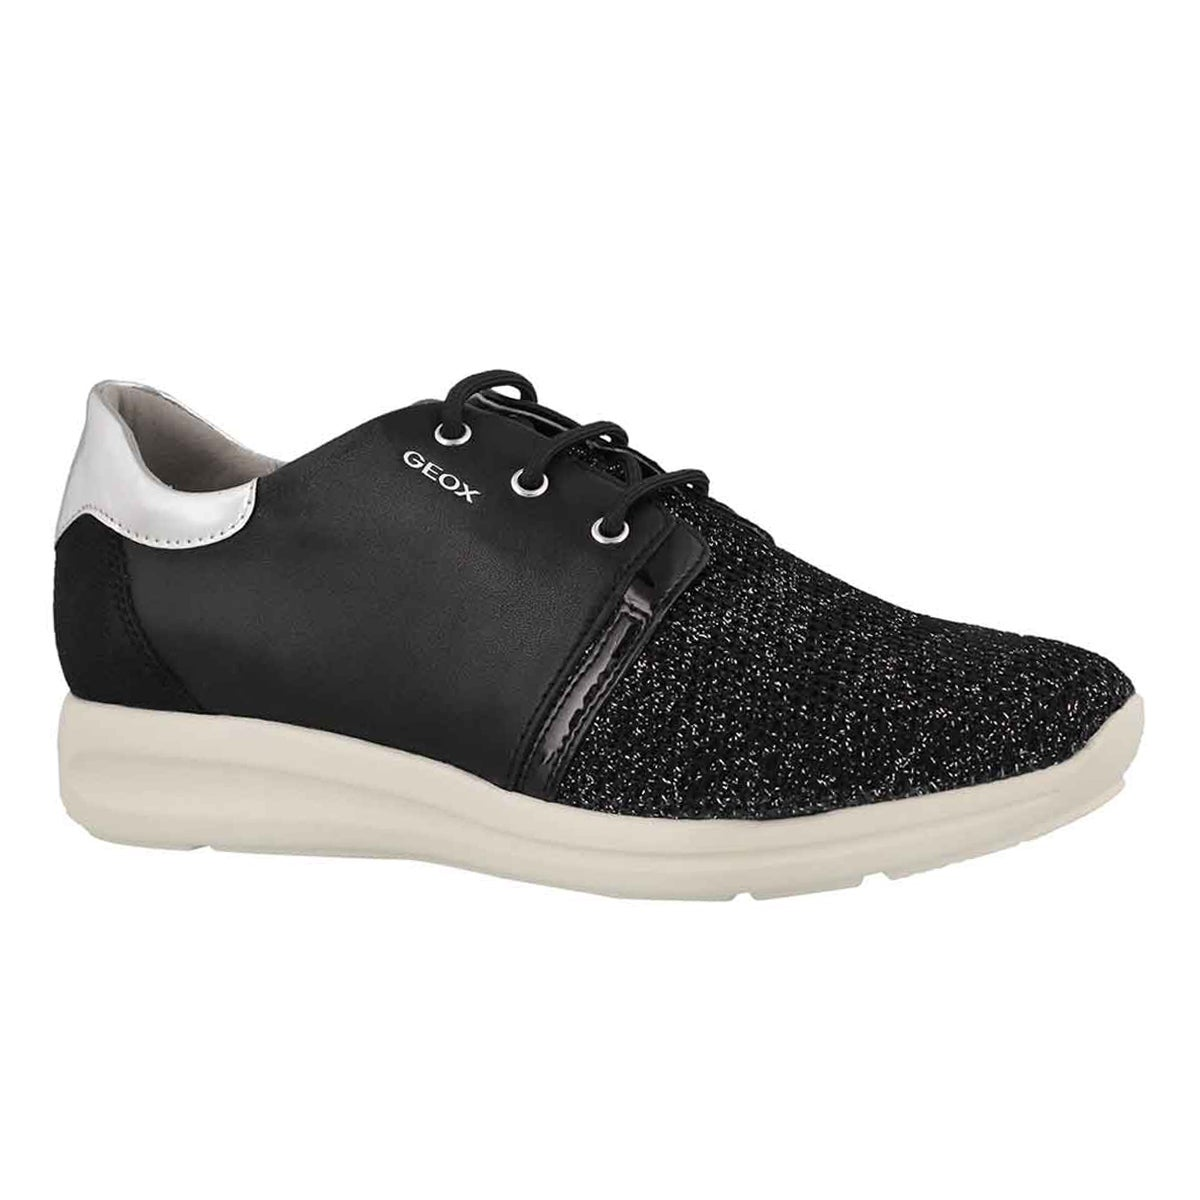 Women's AGYLEAH black fashion sneakers